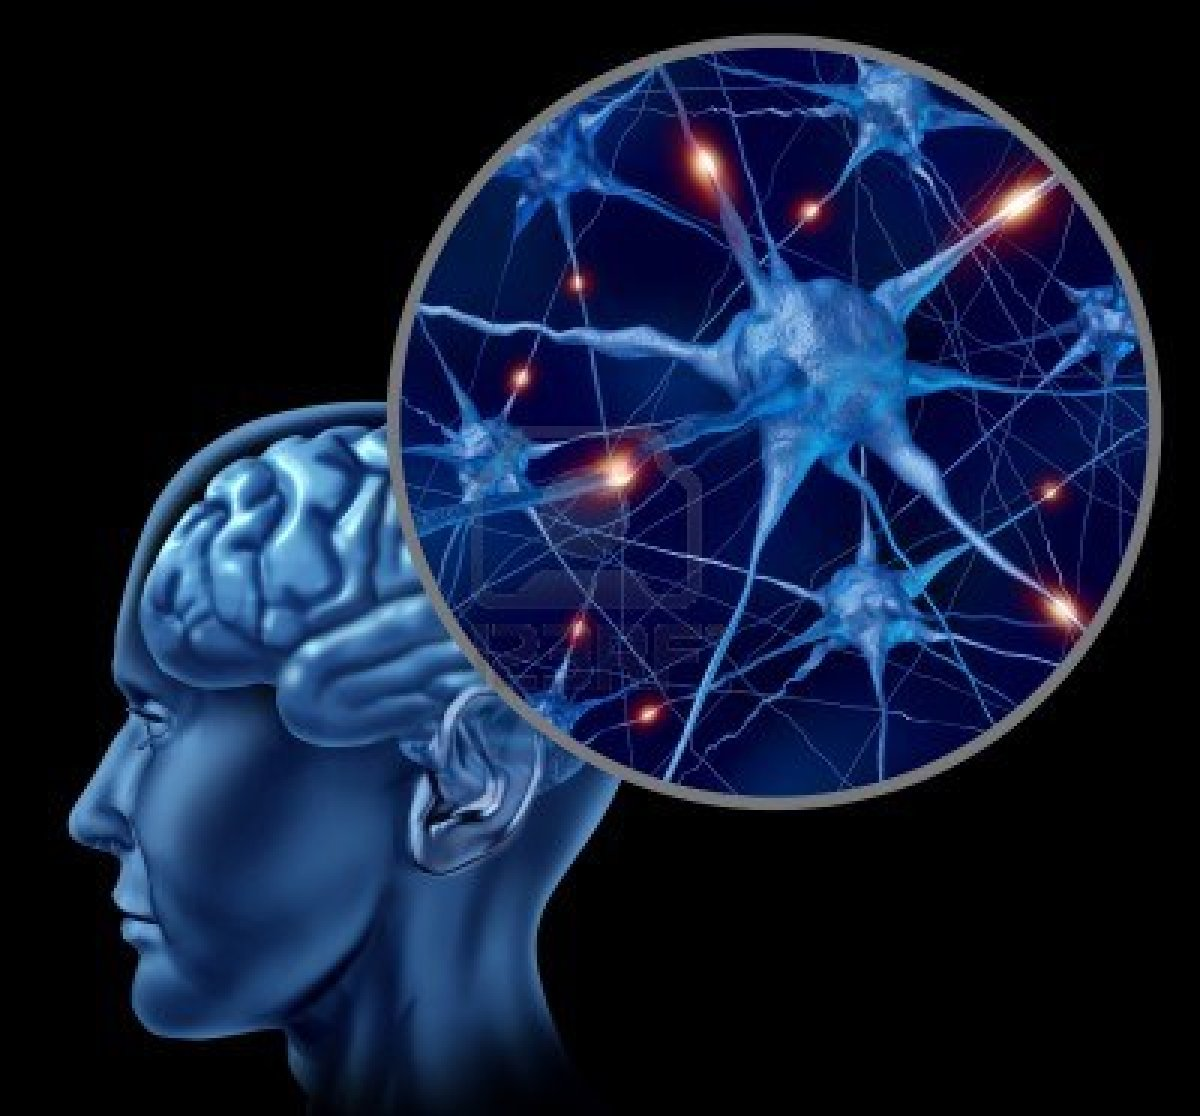 Whytary Fat Is Vital To Optimal Brain Function